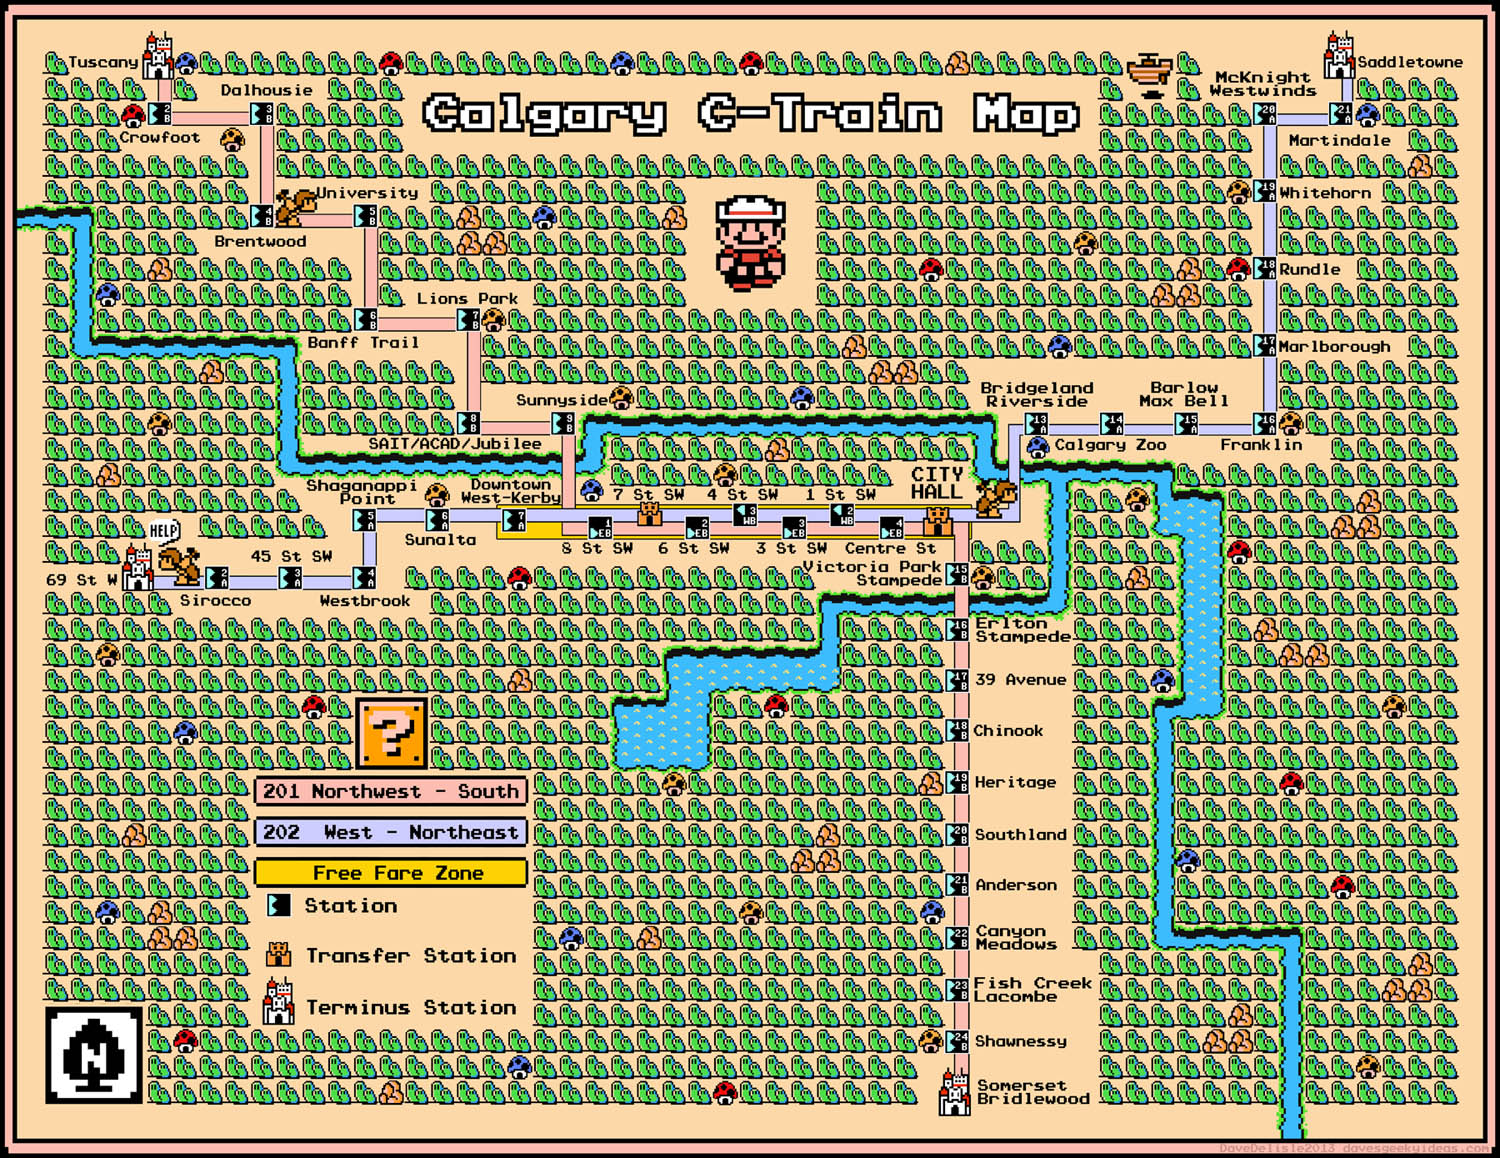 Calgary CTrain Map Super Mario 3 Style Second Edition Daves